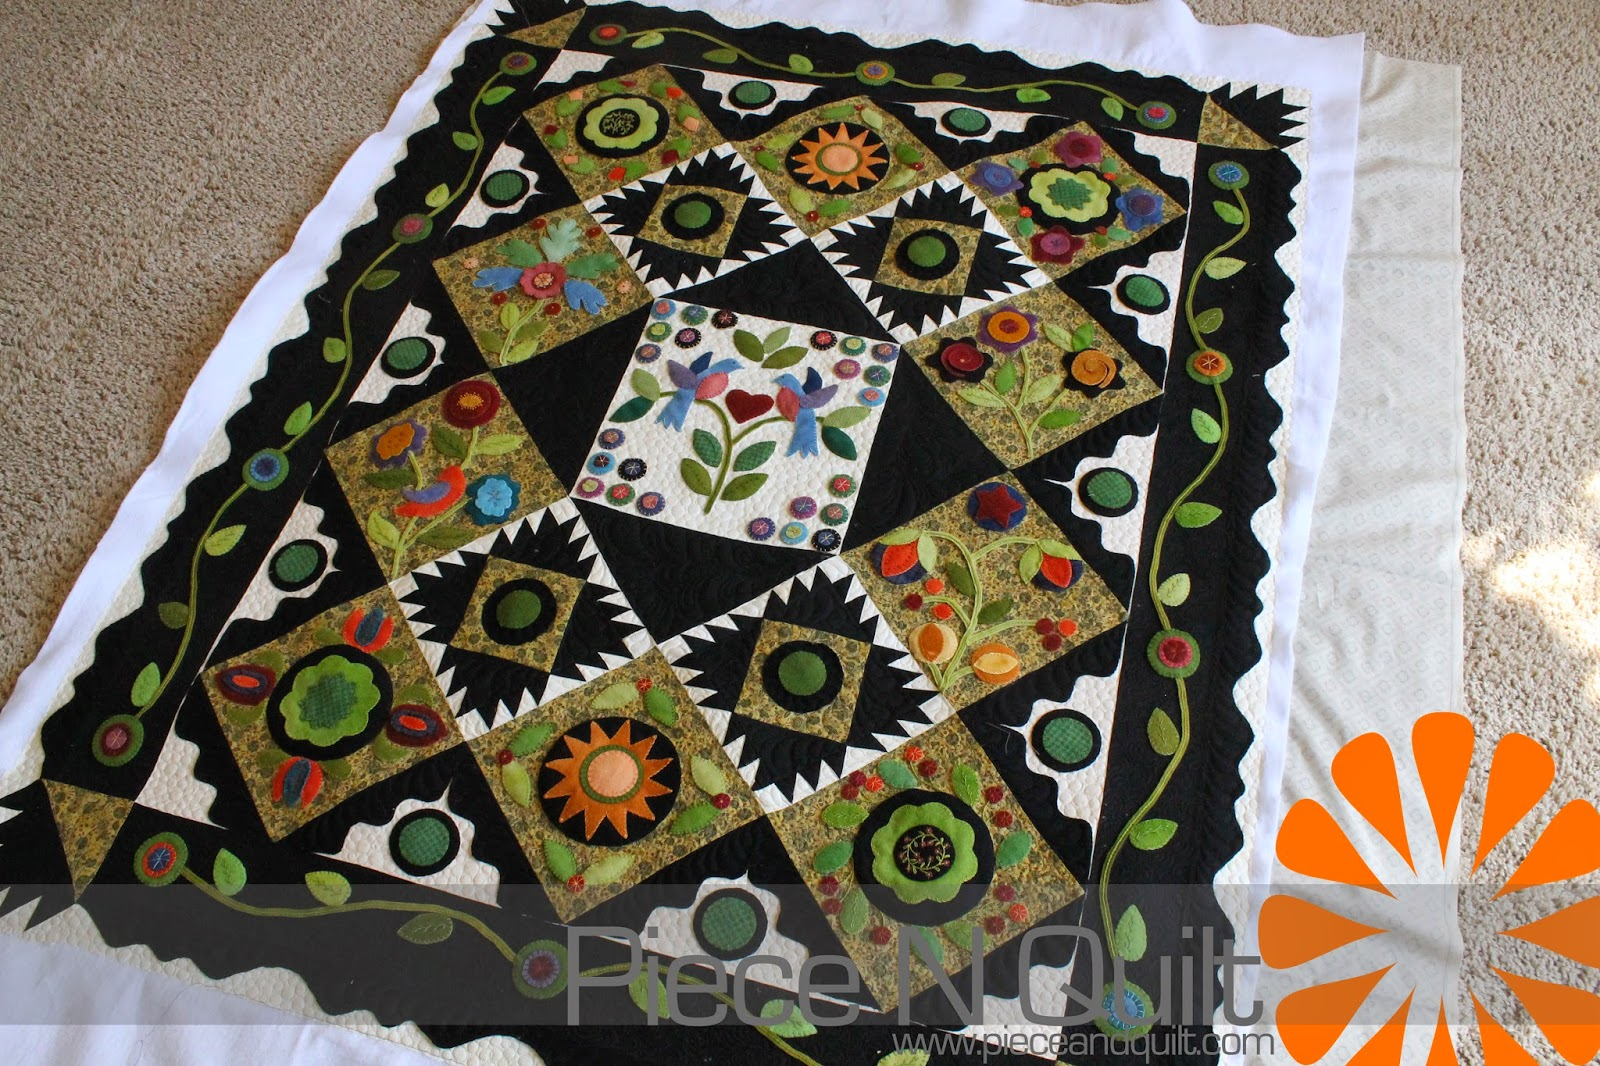 Piece N Quilt: Penny Wool Quilt : quilting with wool - Adamdwight.com